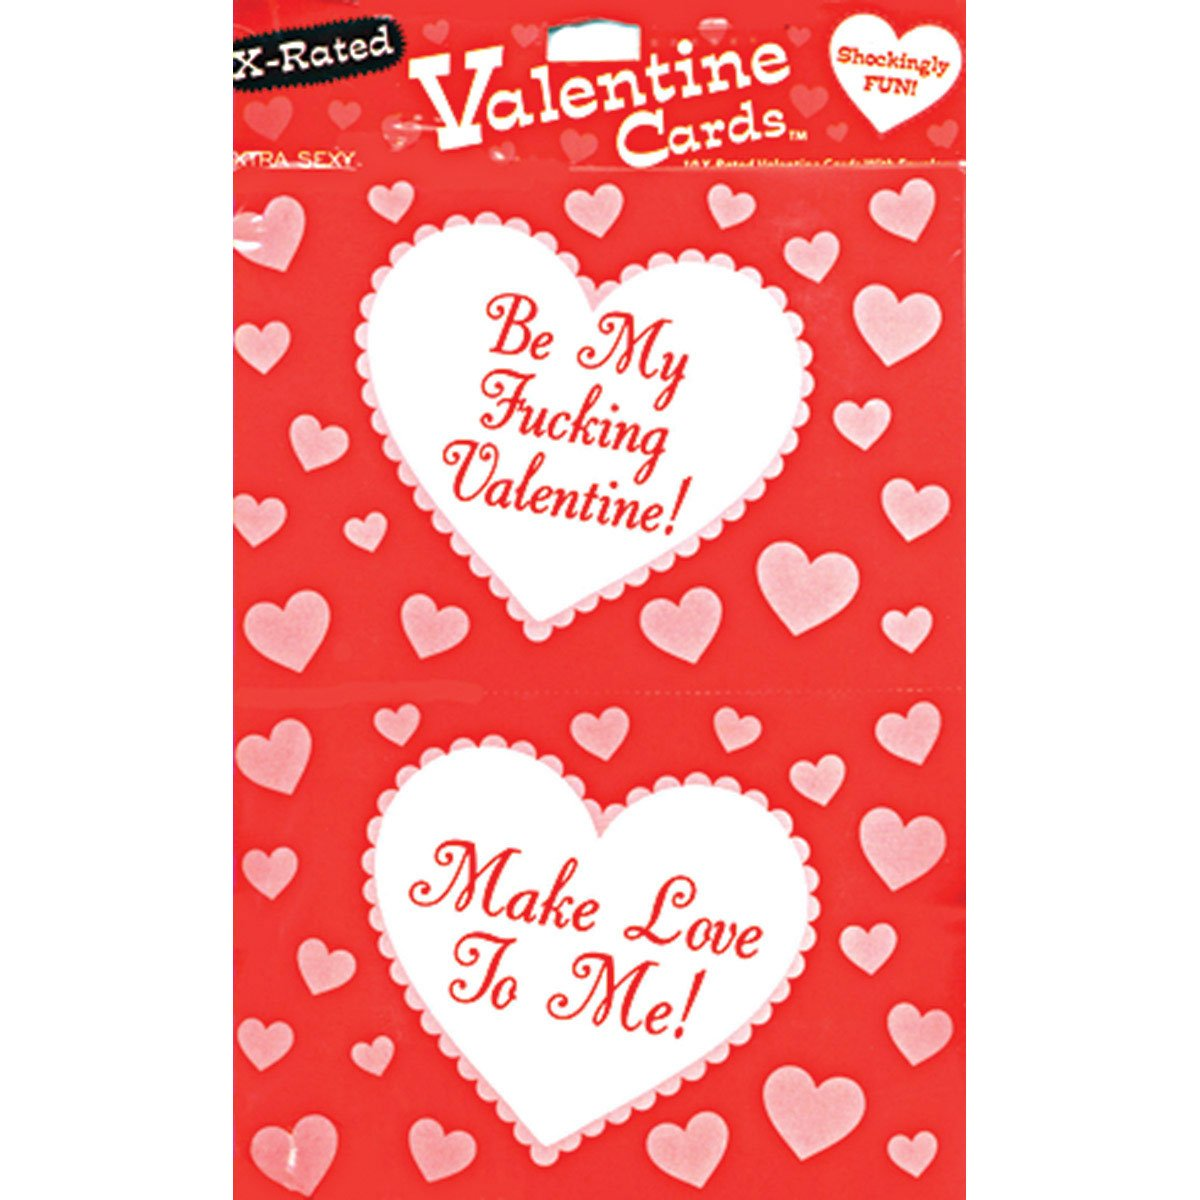 Amazon.com: X-Rated Valentine Day Cards 10 cards with envelopes ...